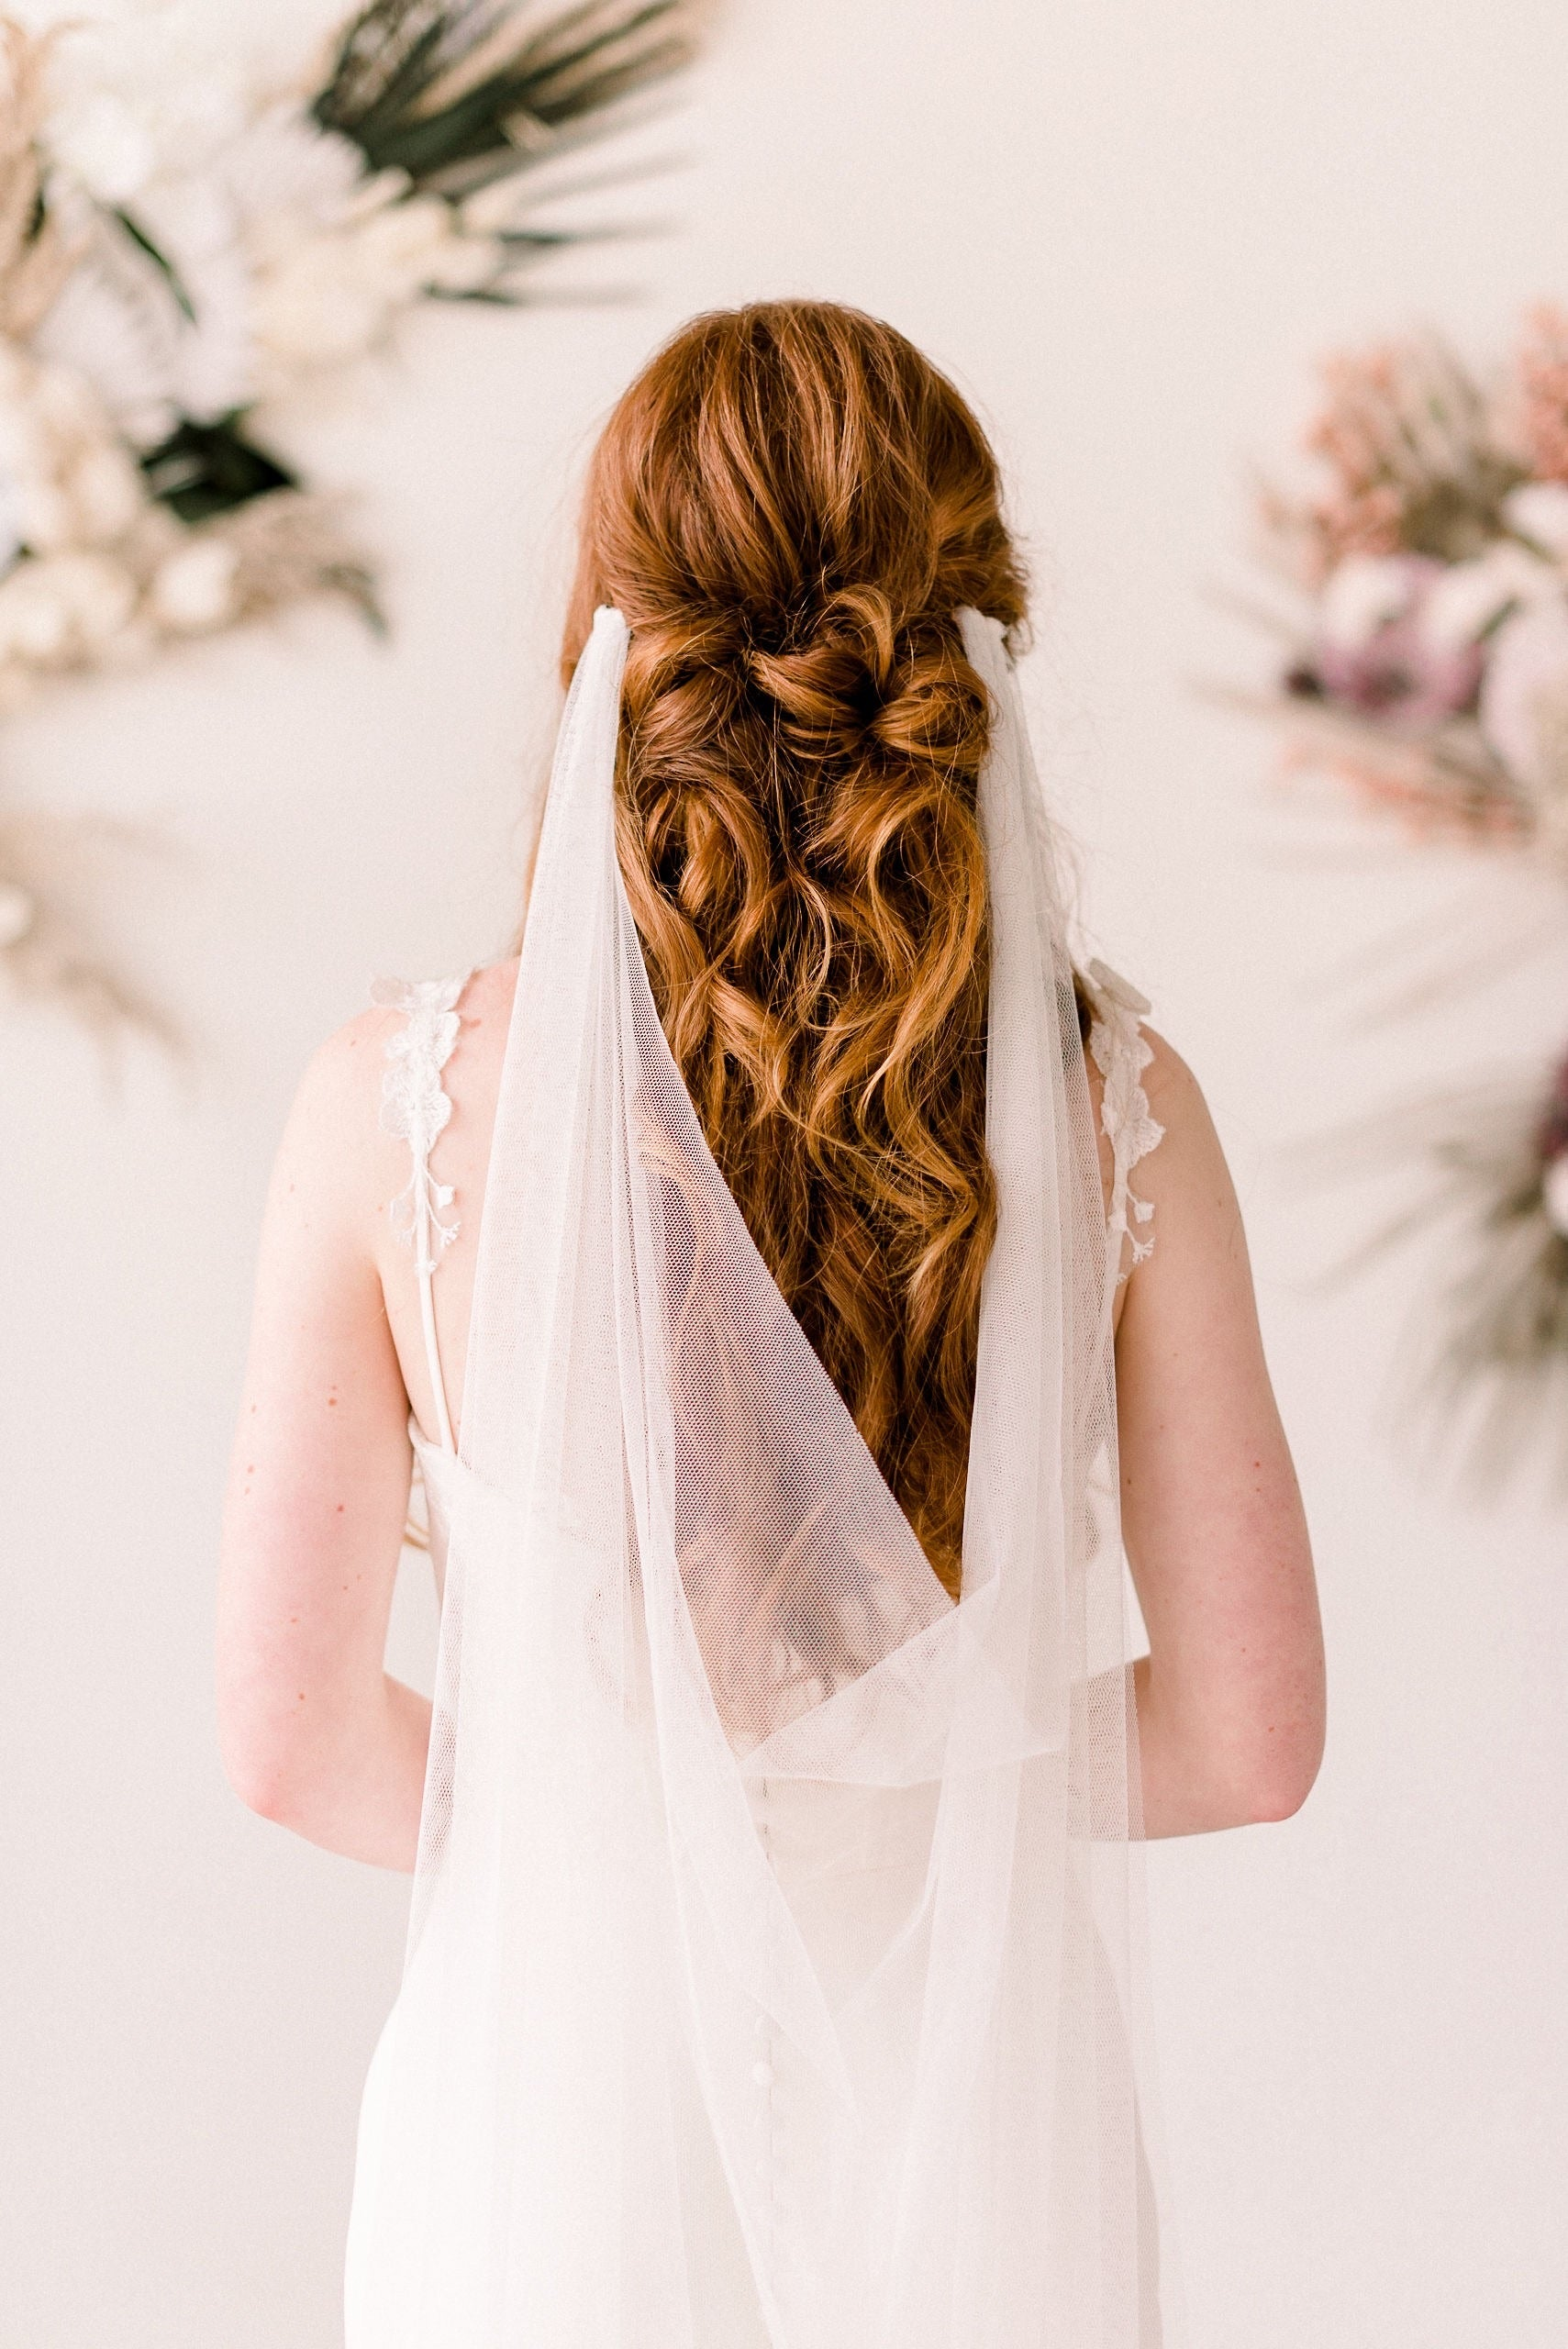 Bridal English net draped veil - Tessa Kim